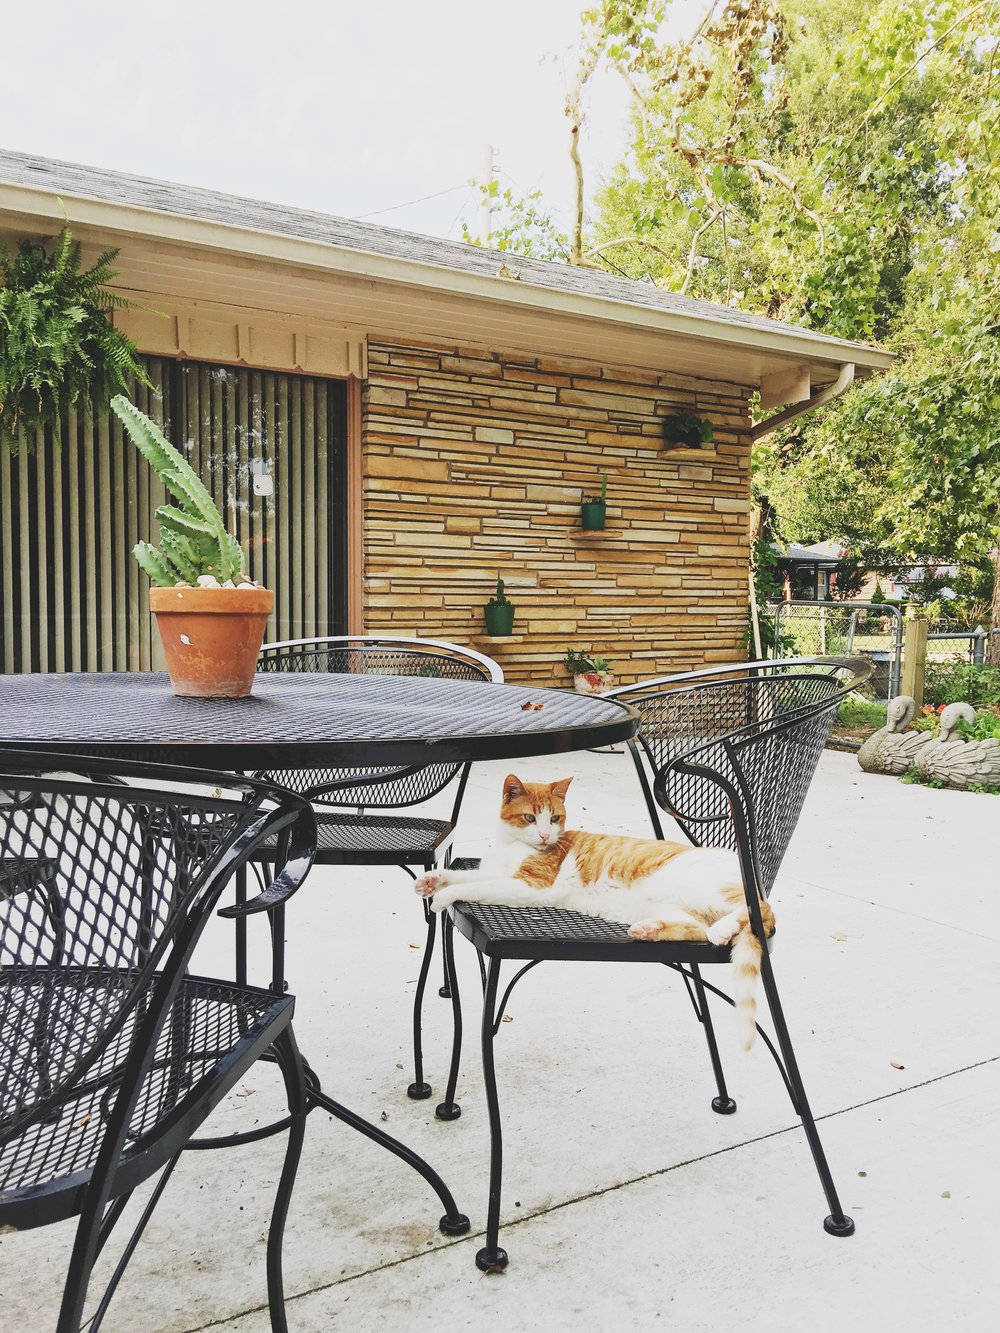 We were super pumped that Palmer's patio was  featured on Apartment Therapy  this week. Palmer intentionally matches her design color schemes to her pet's fur colors. The patio was inspired by Siggy.